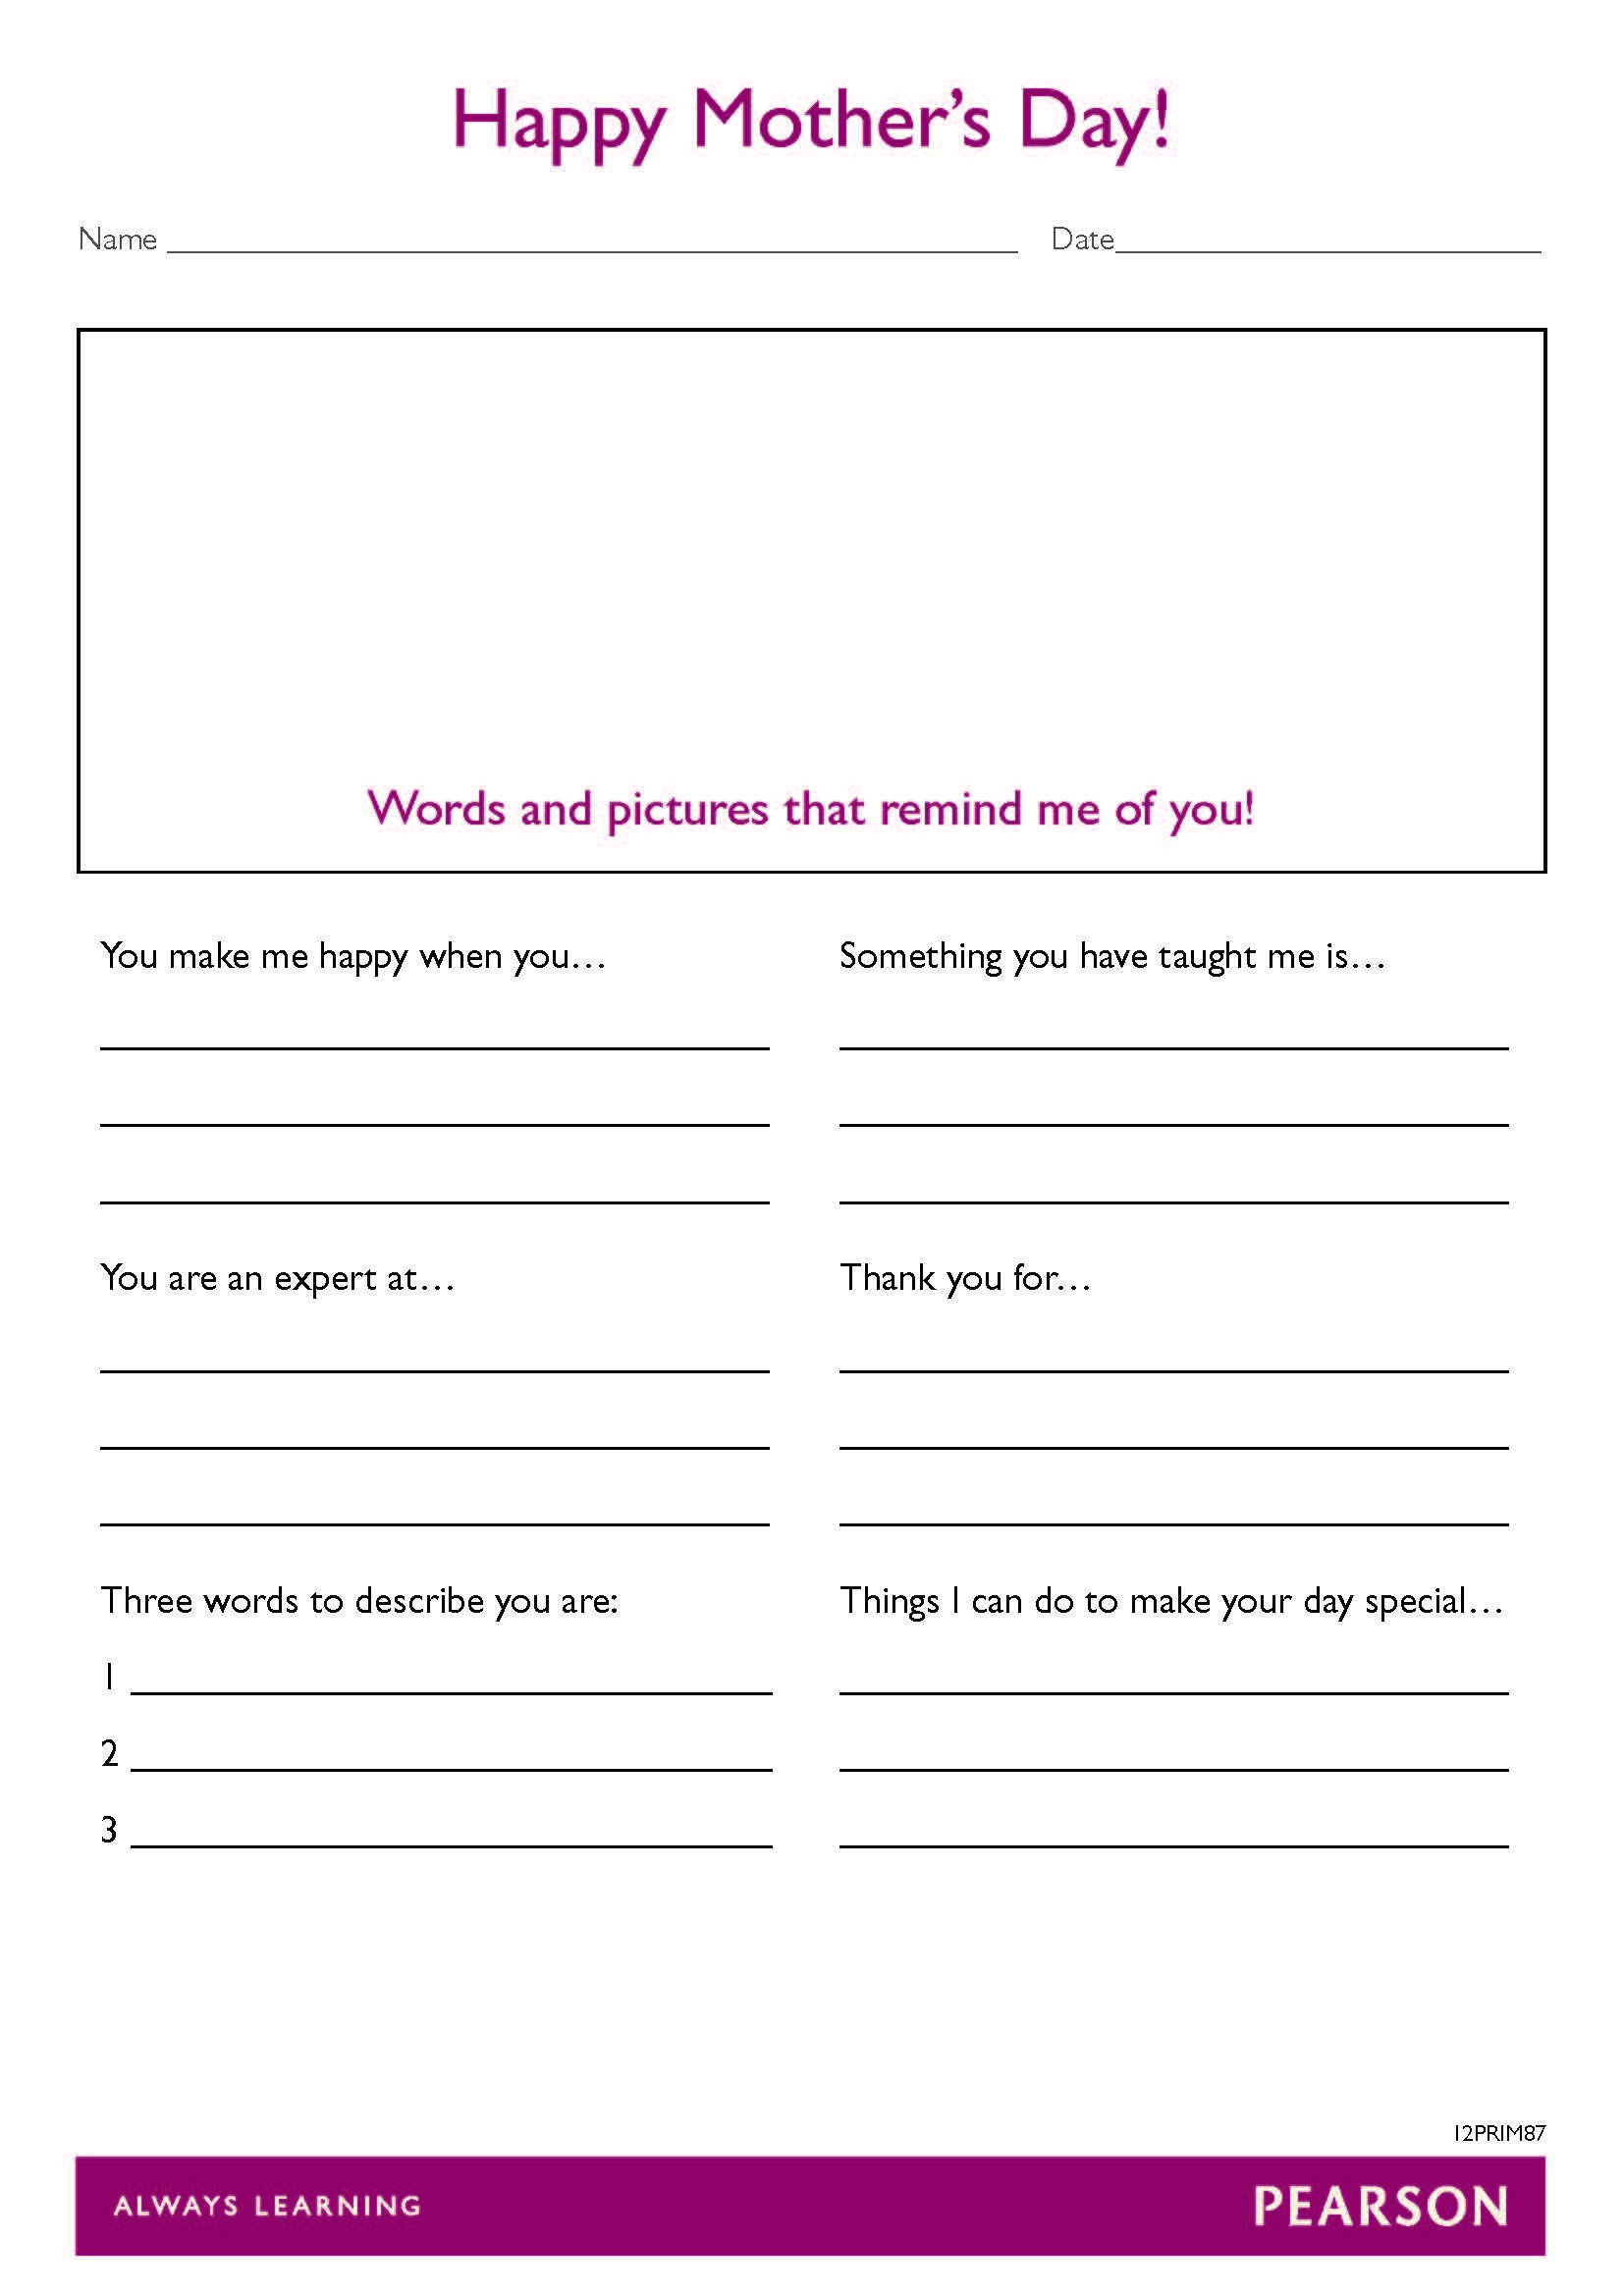 Free Mother S Day Worksheet For Year 3 6 Students